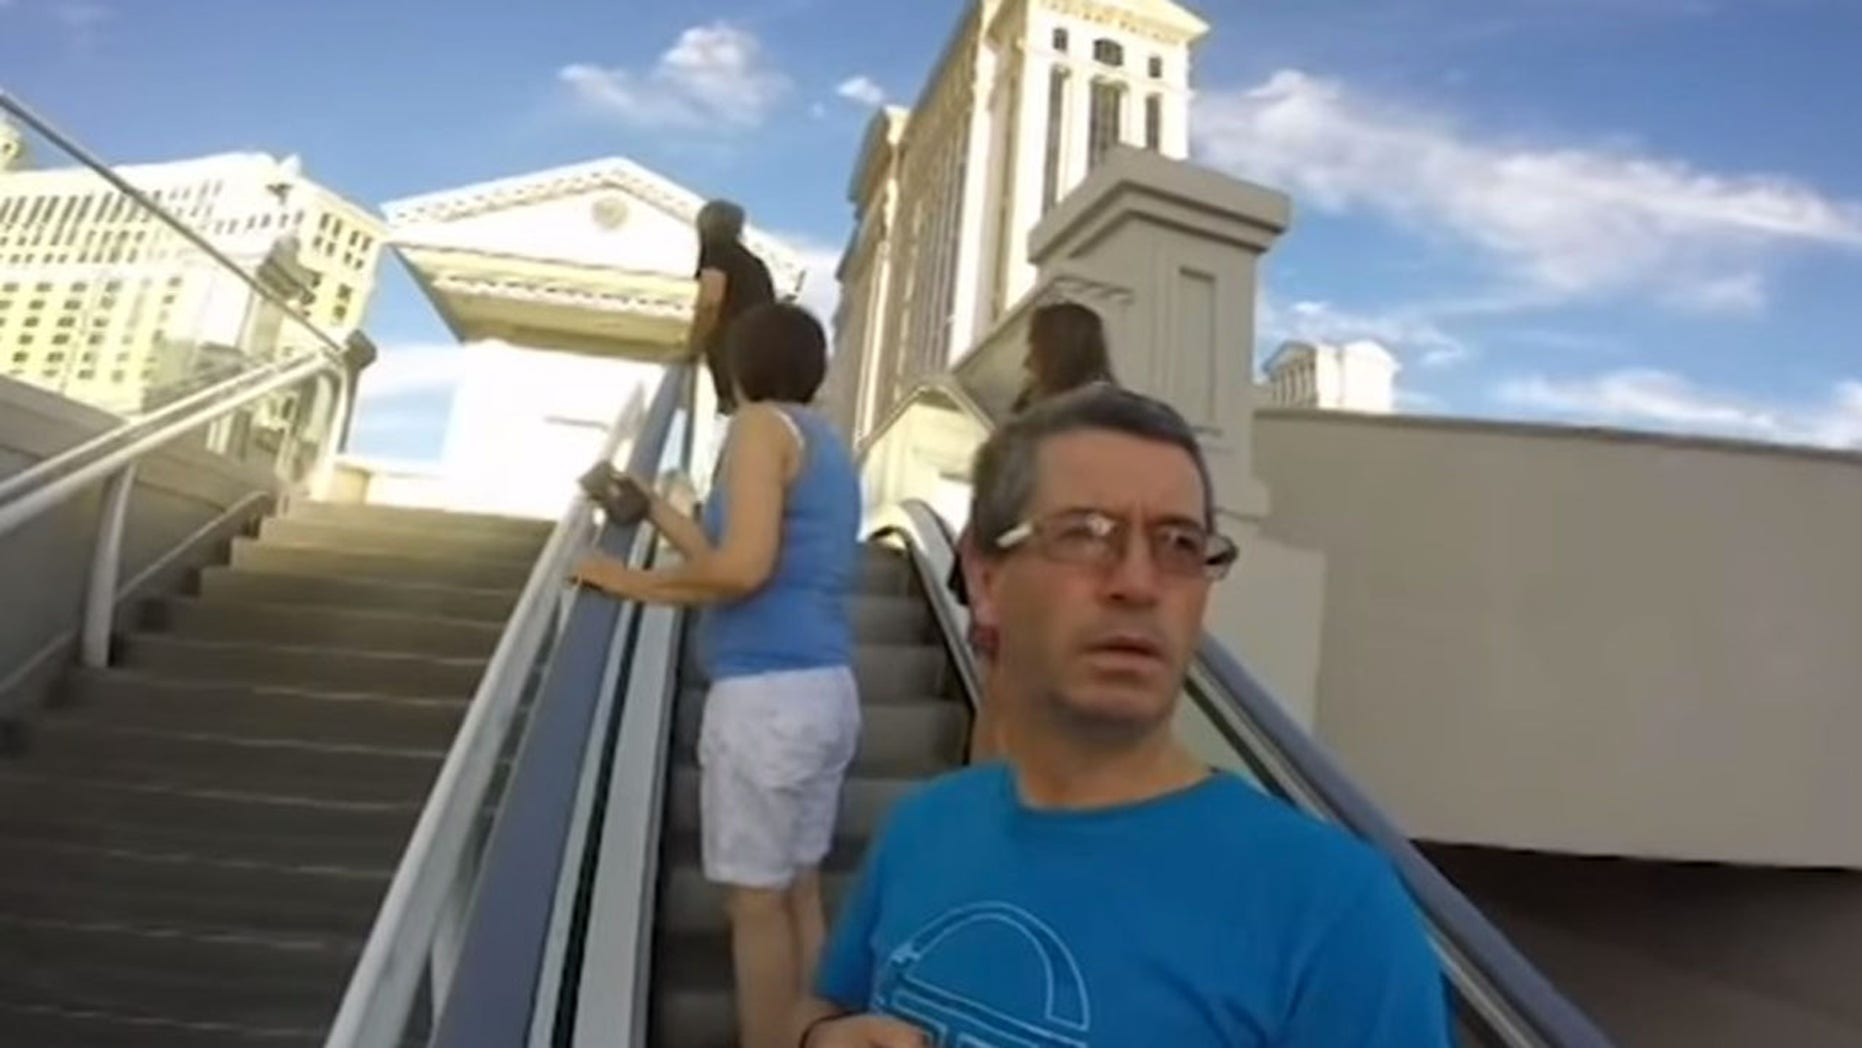 Irish tourist Joseph Griffin needed a lesson on how to work his son's GoPro.